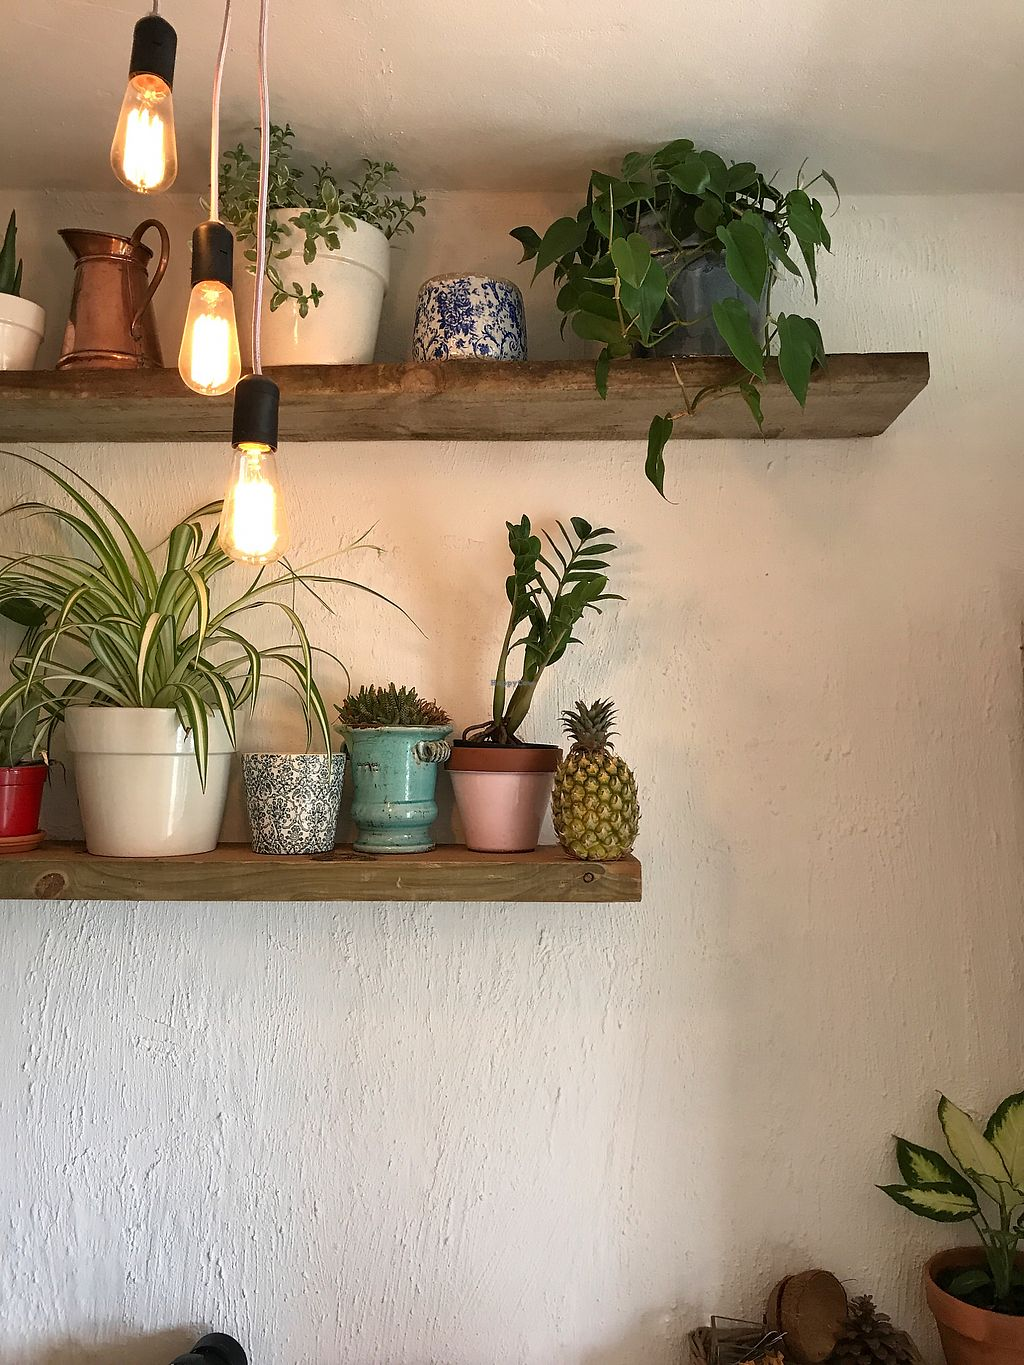 """Photo of Nourish'd Cafe & Juicery  by <a href=""""/members/profile/LaurenClaire"""">LaurenClaire</a> <br/>Cafe decor <br/> October 17, 2017  - <a href='/contact/abuse/image/93127/316042'>Report</a>"""